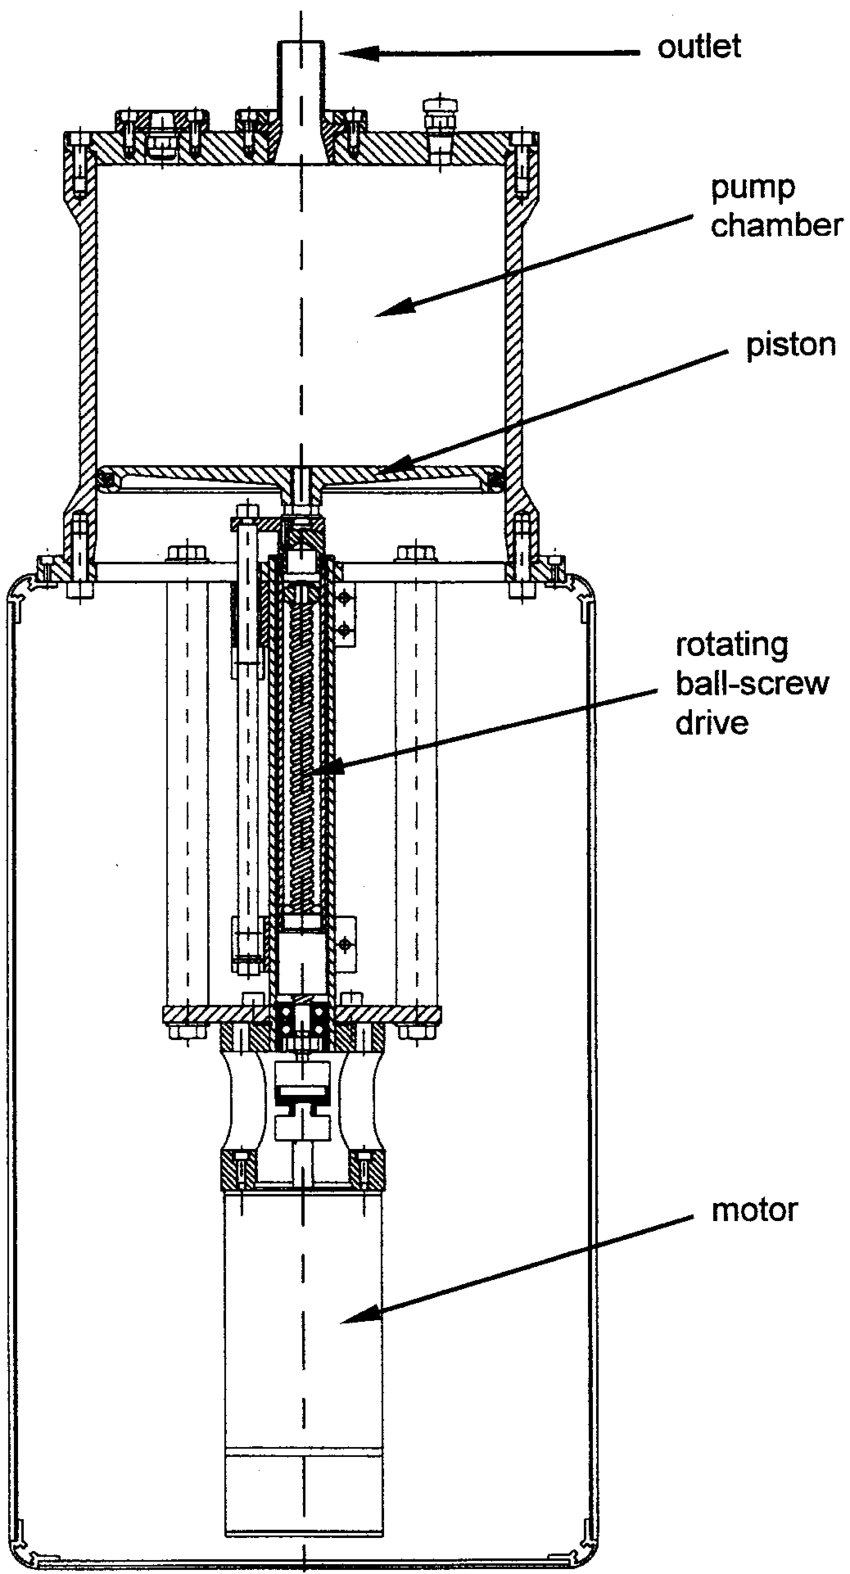 medium resolution of technical drawing of pump chamber piston drive and motor